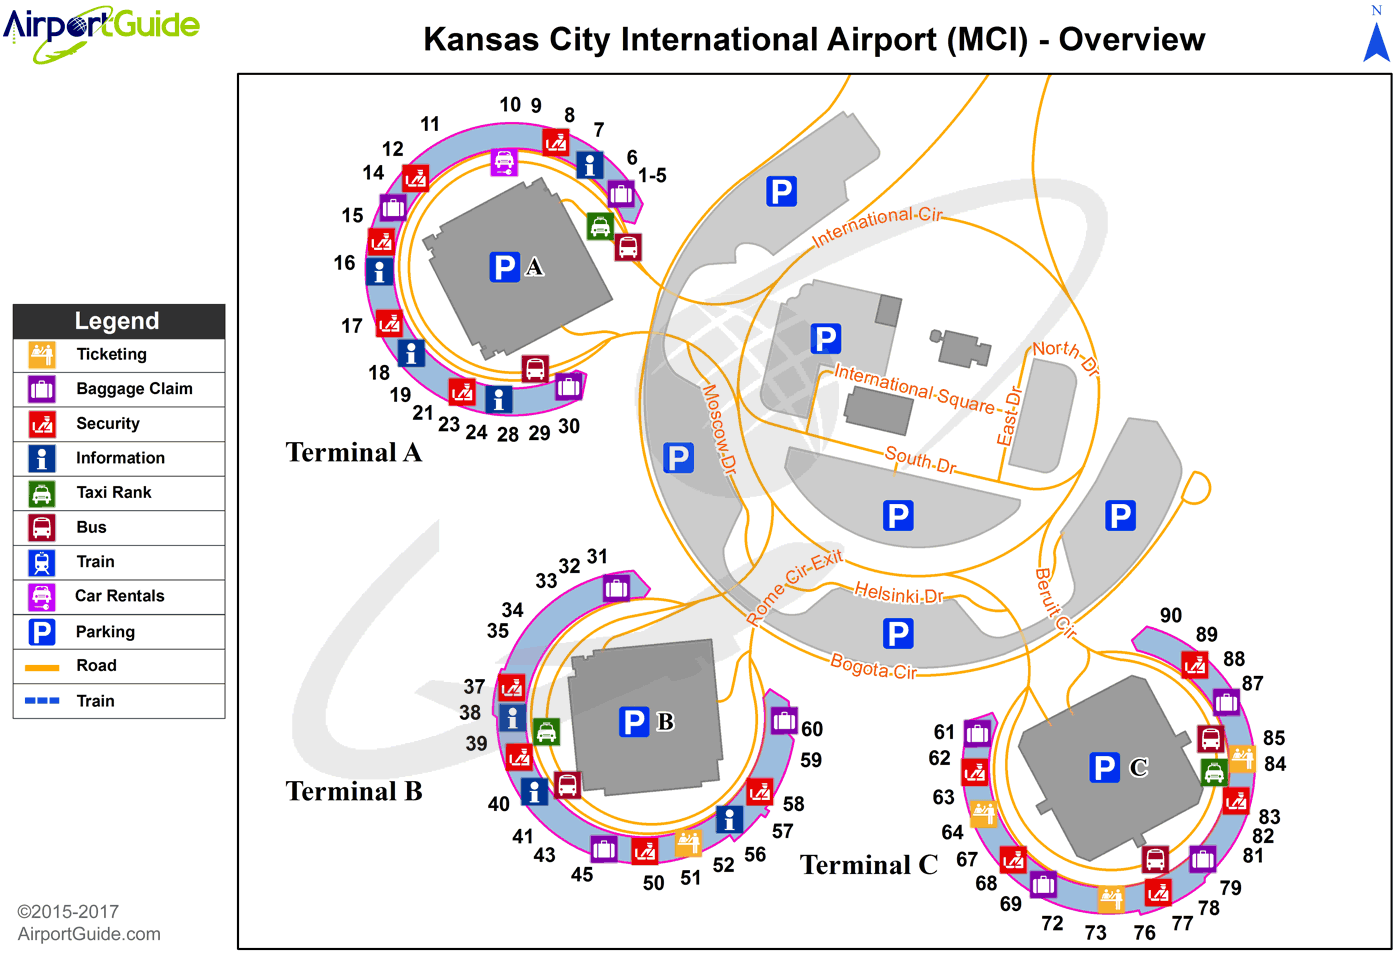 kci airport terminal map Kansas City Kansas City International Mci Airport Terminal Map kci airport terminal map